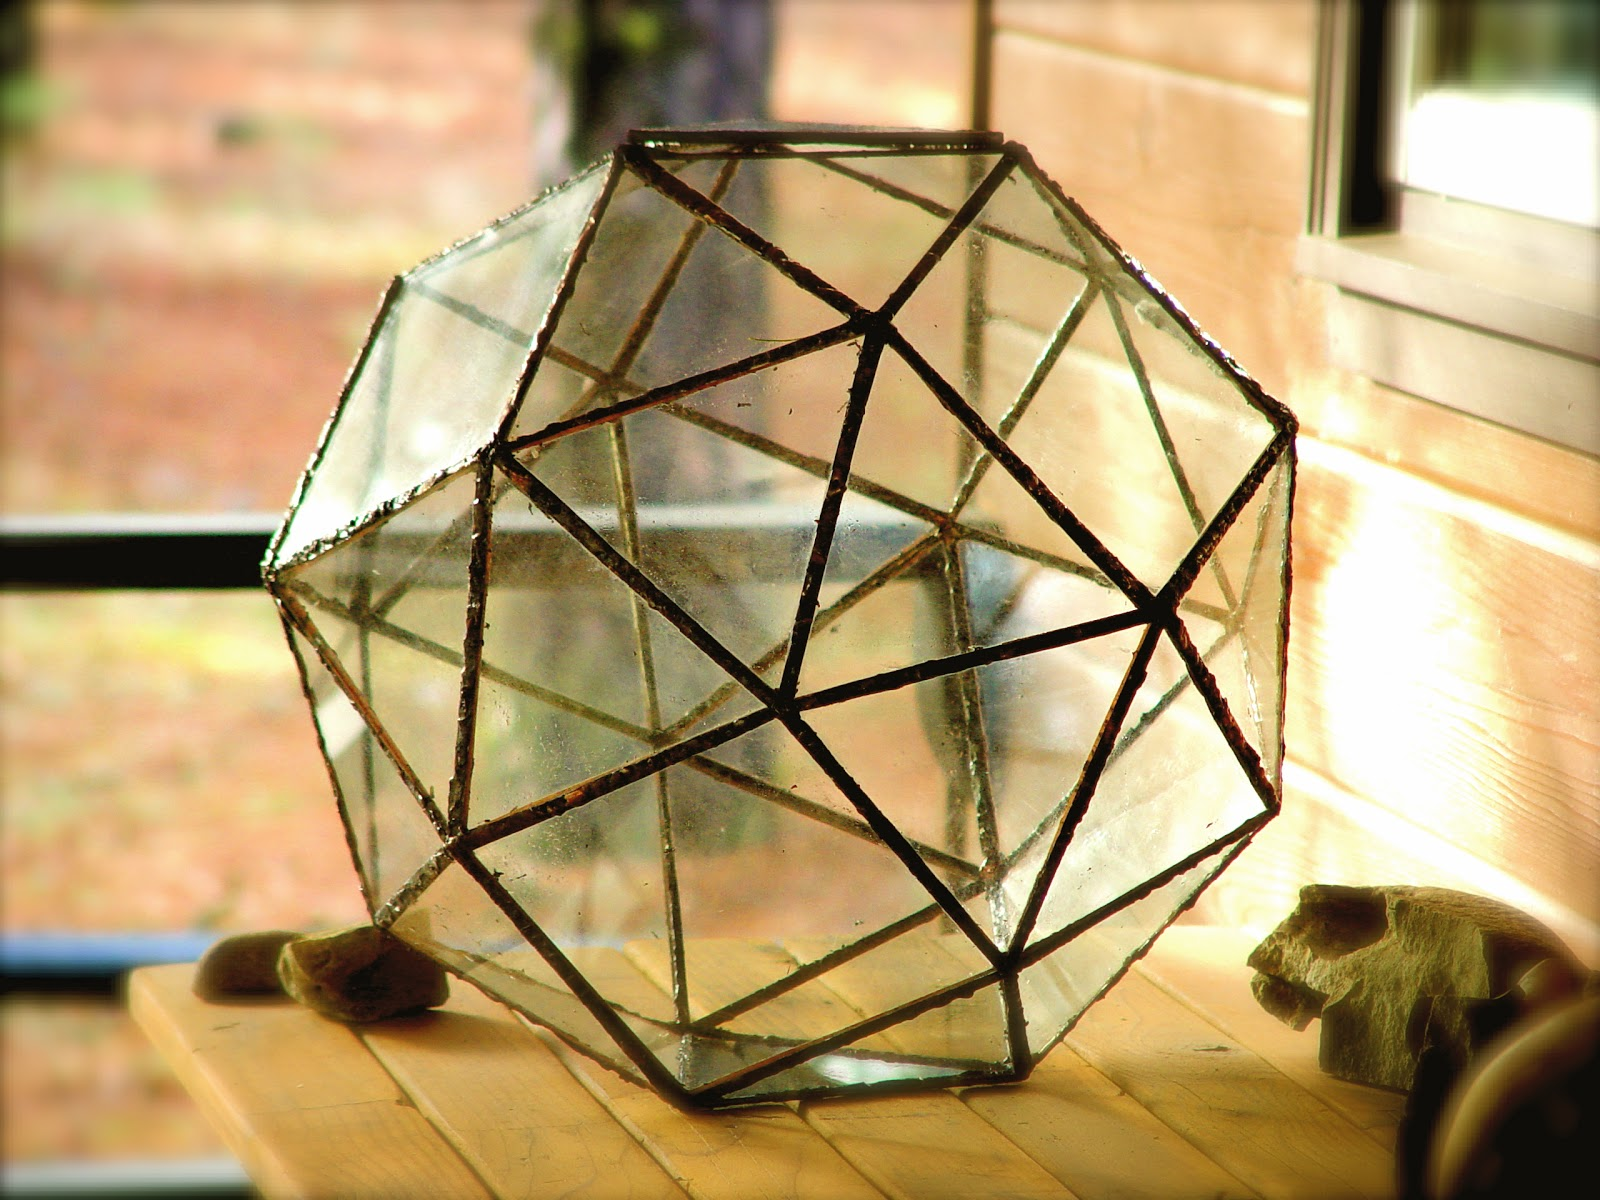 The Last Terrarium That I Built Was Most Difficult To Assemble Made In Spokane Washington 2007 This Archimedean Polyhedra Called A Snub